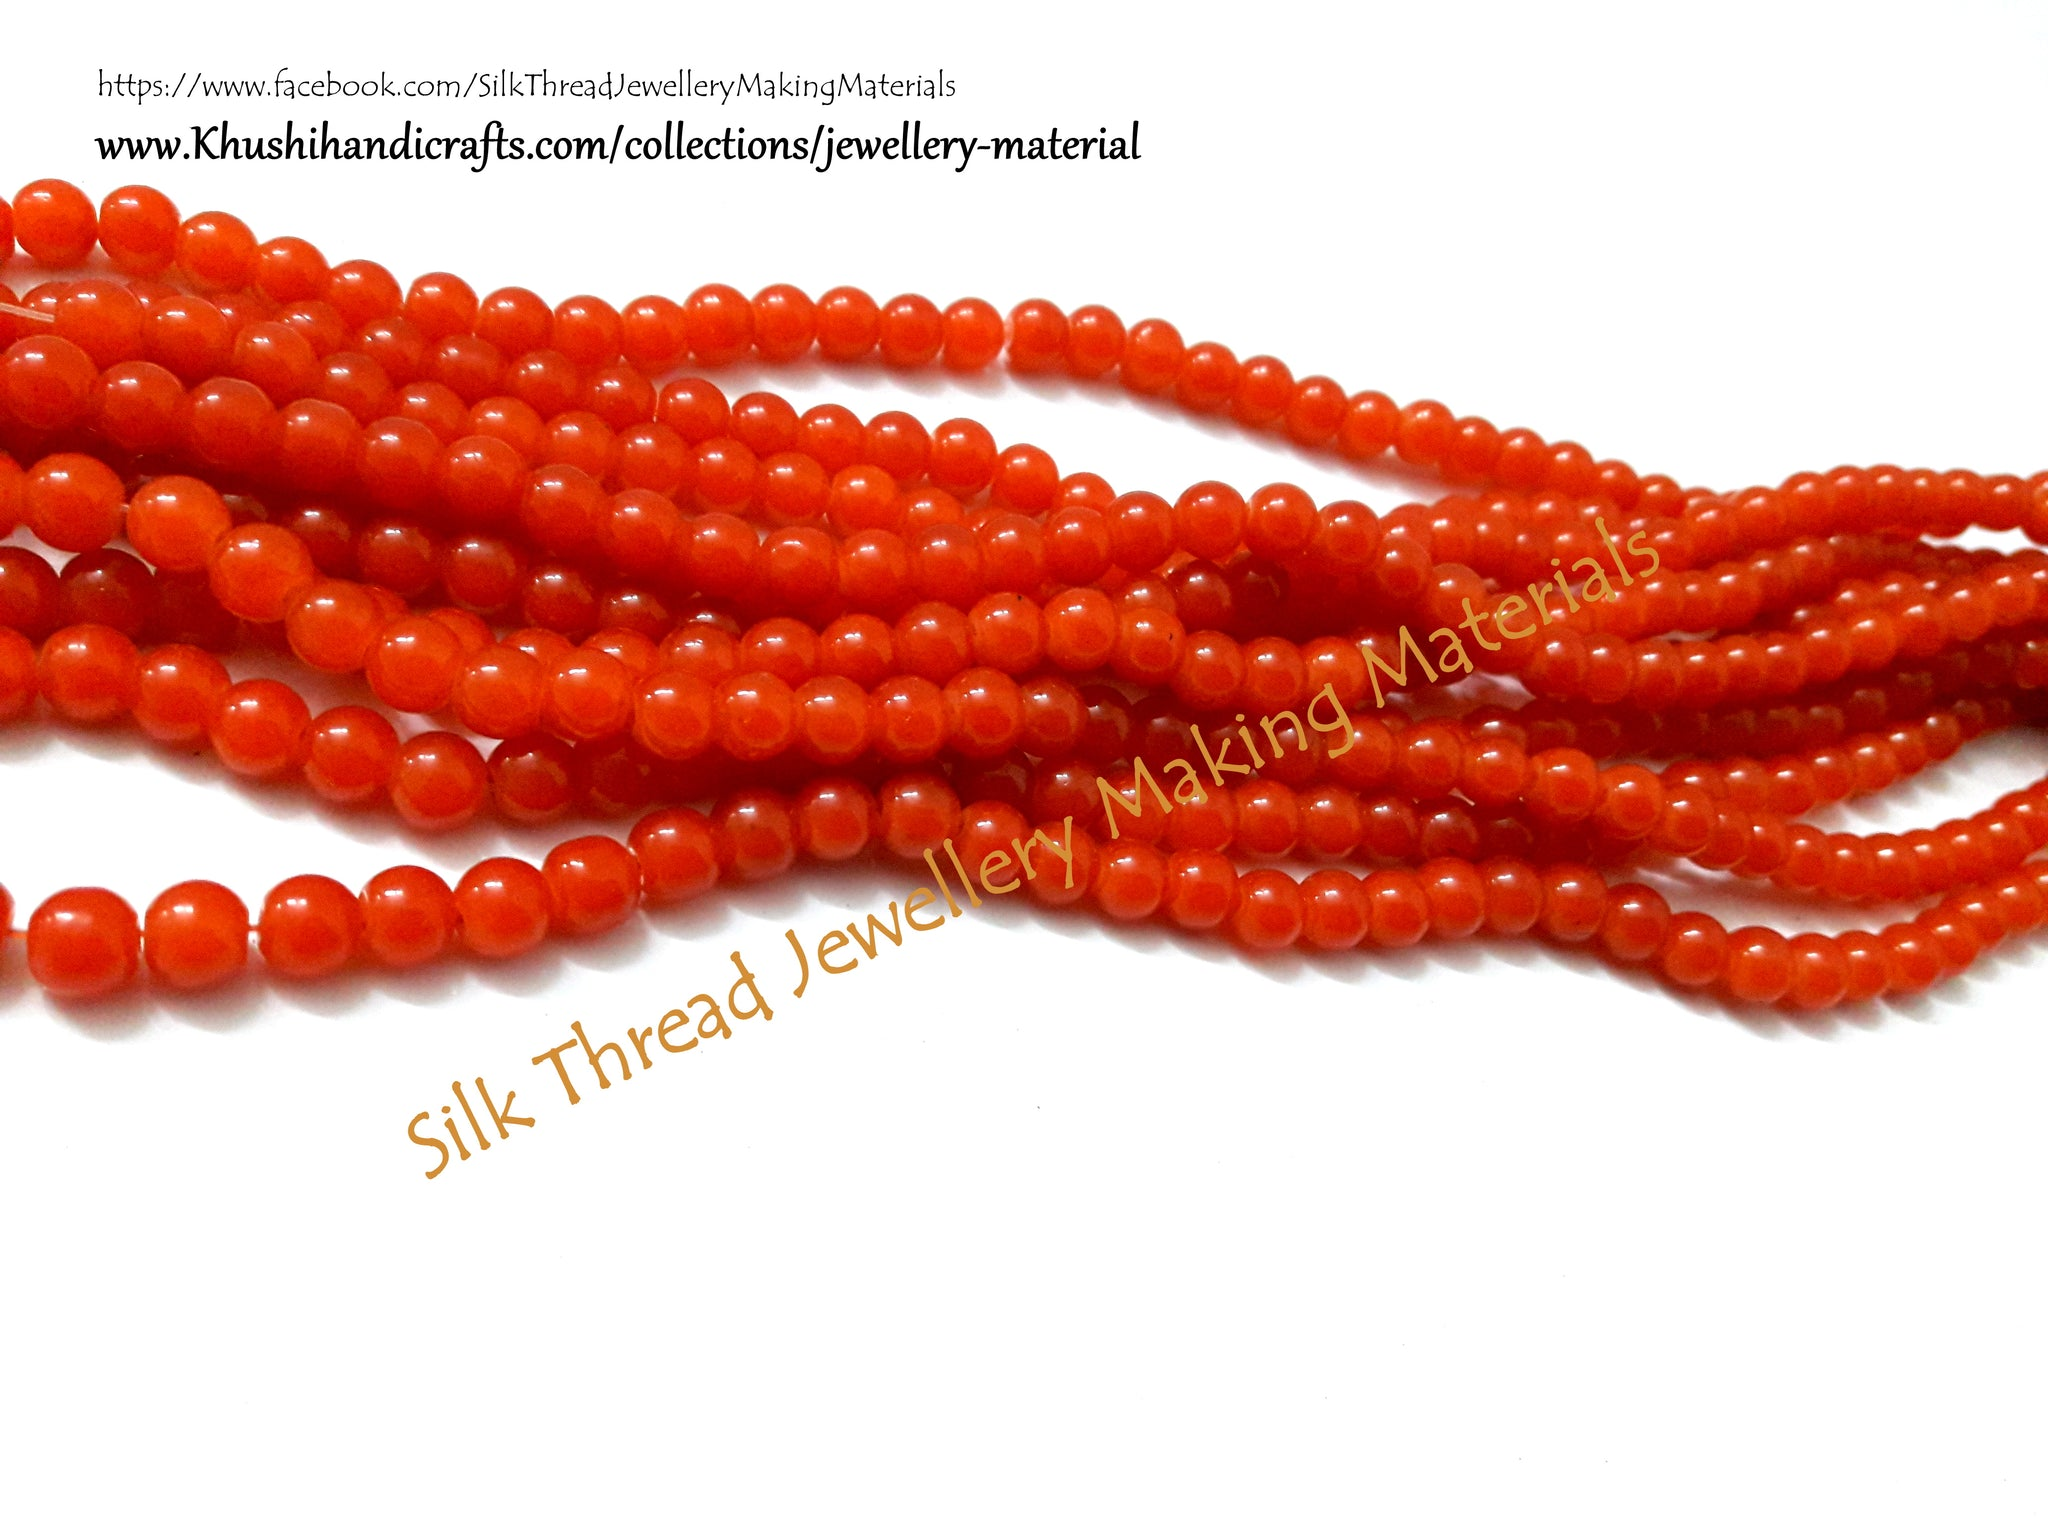 Glass beads 5 mm - Orange